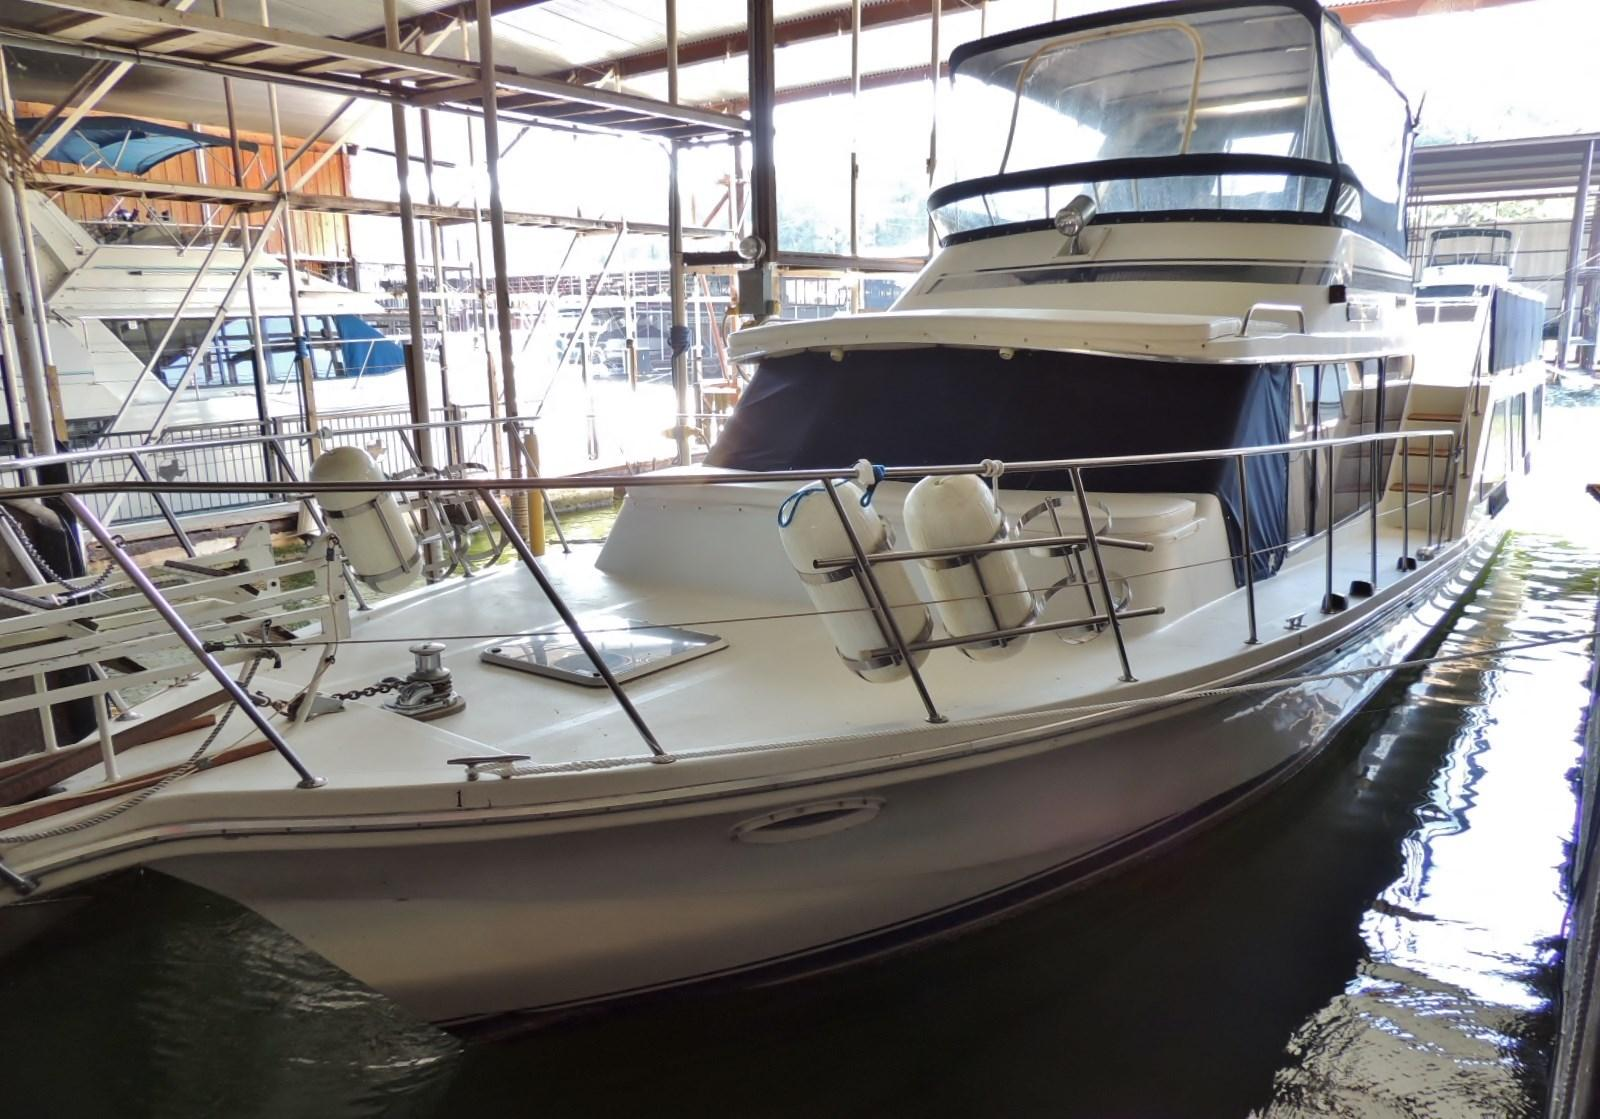 Boats For Sale In Tn >> 1987 Bluewater Yachts 51 Coastal Cruiser Power Boat For Sale - www.yachtworld.com